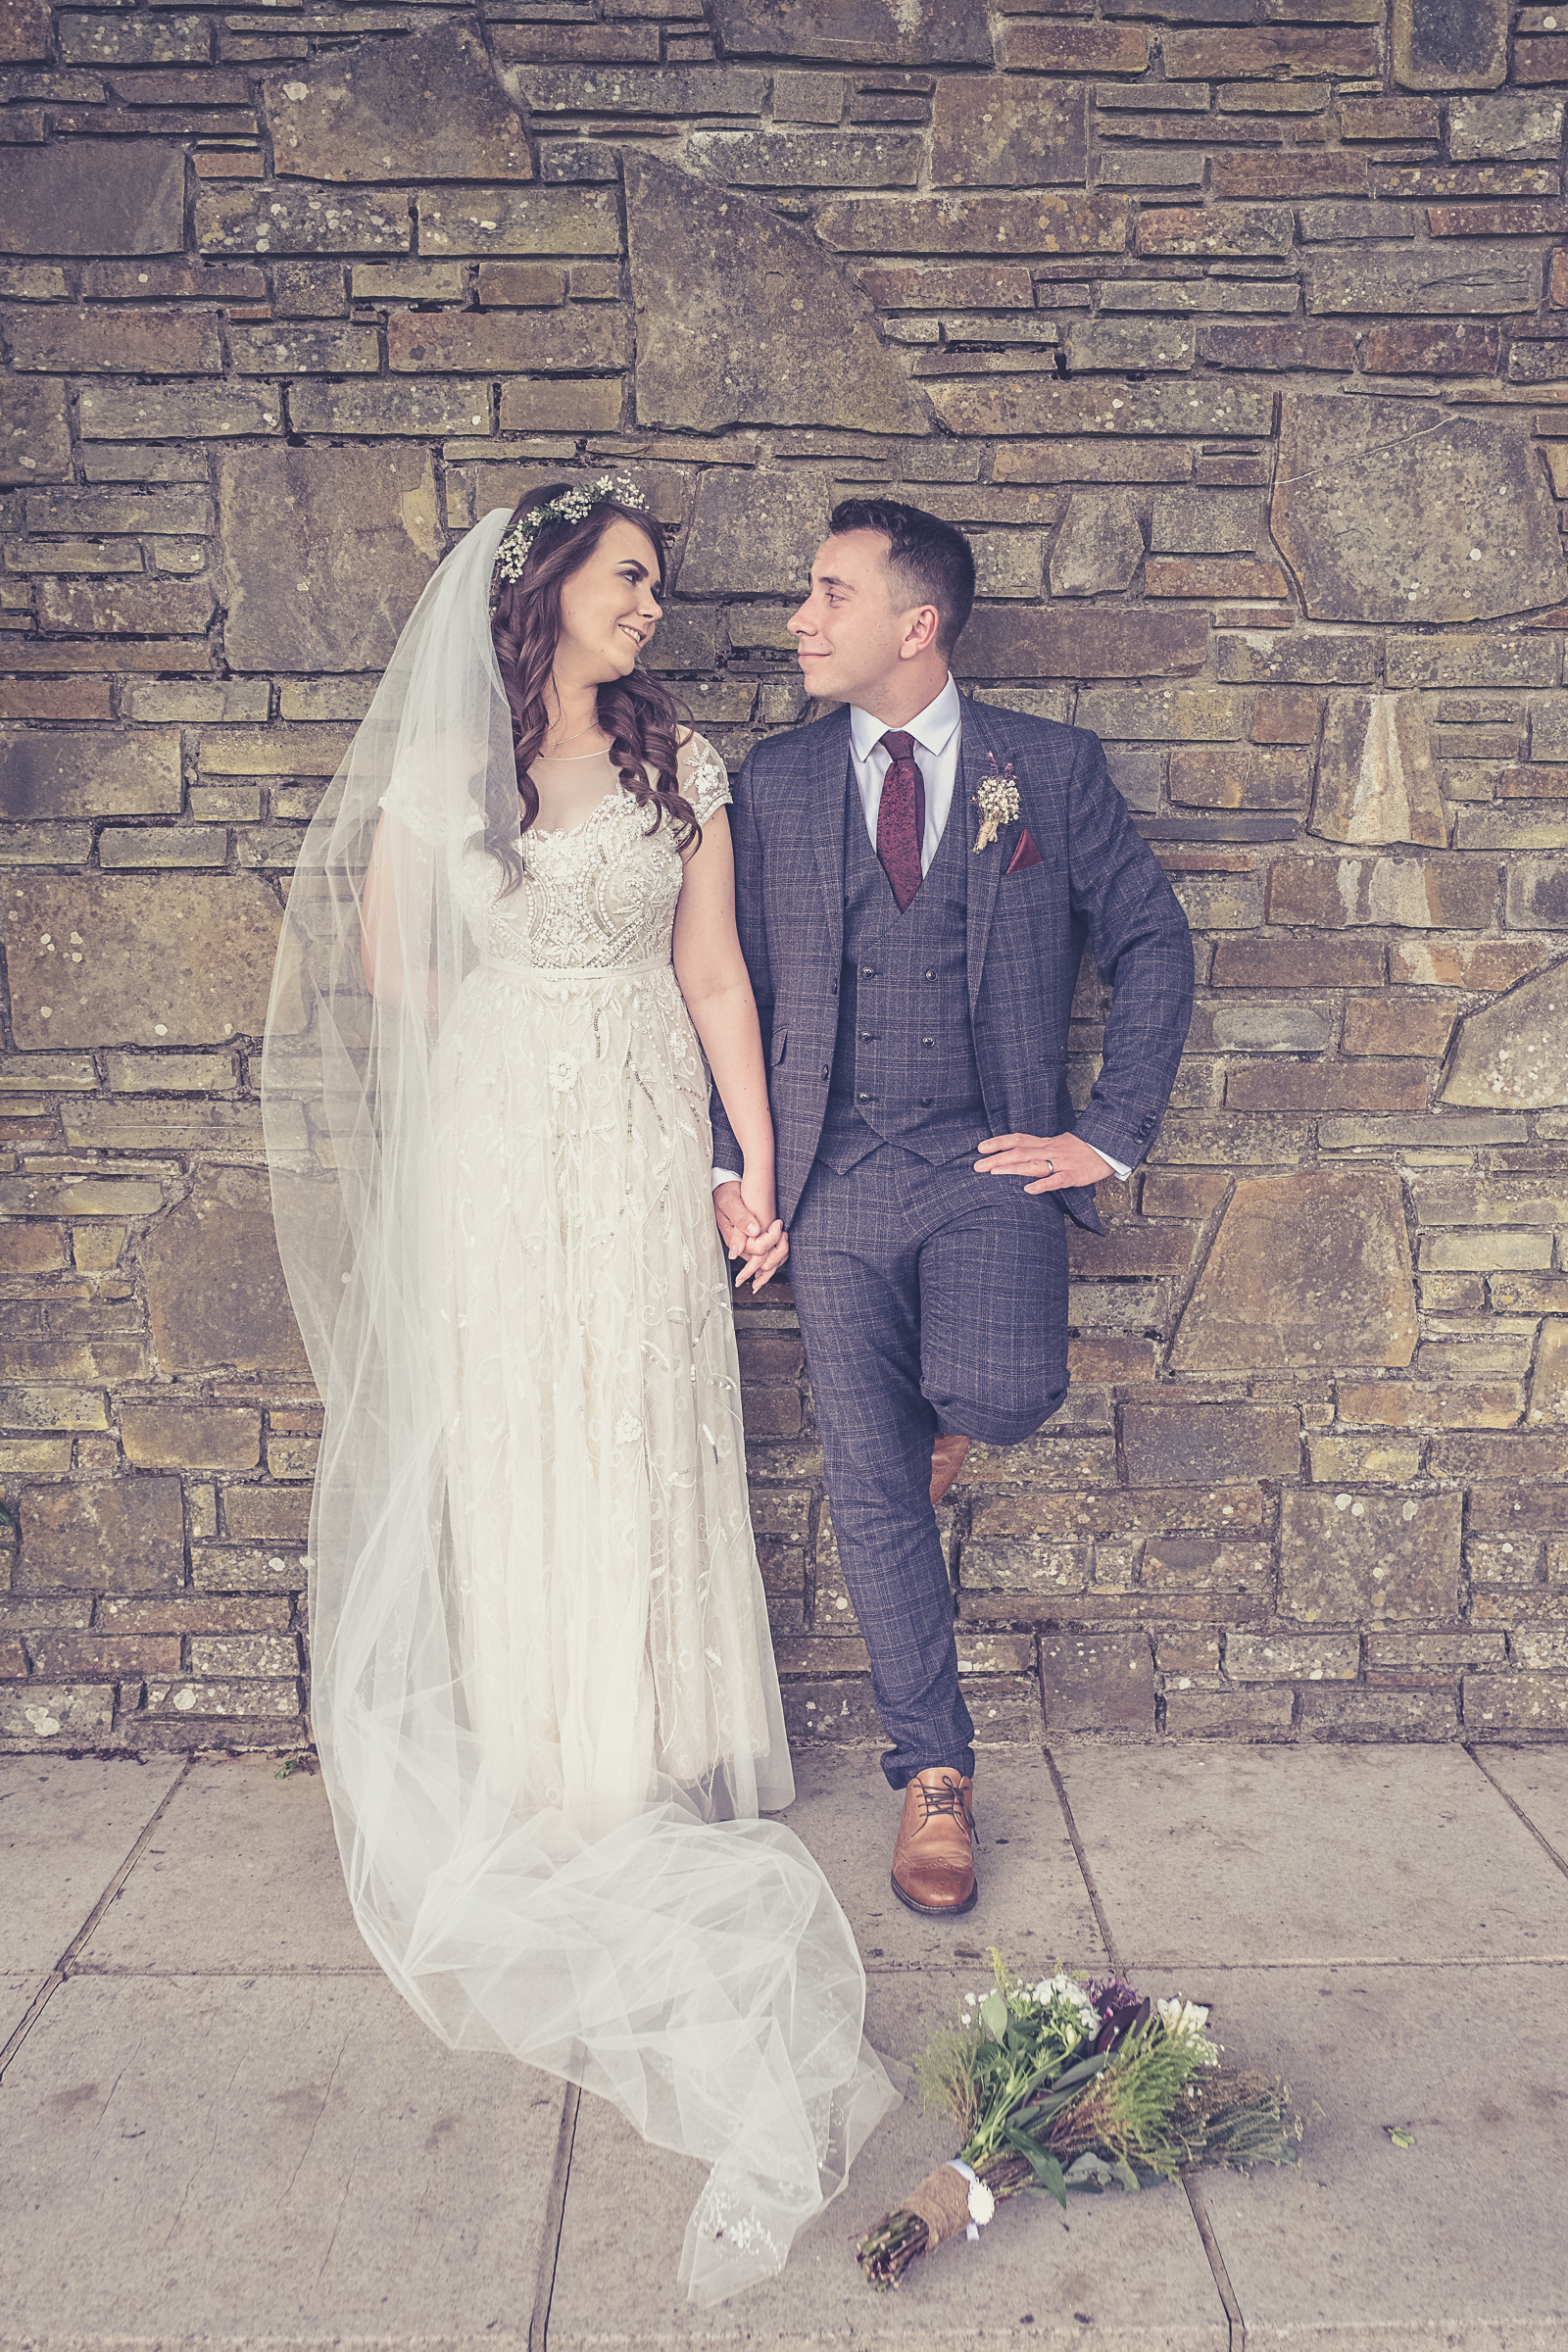 Ruth and Josh's Joyful Wedding